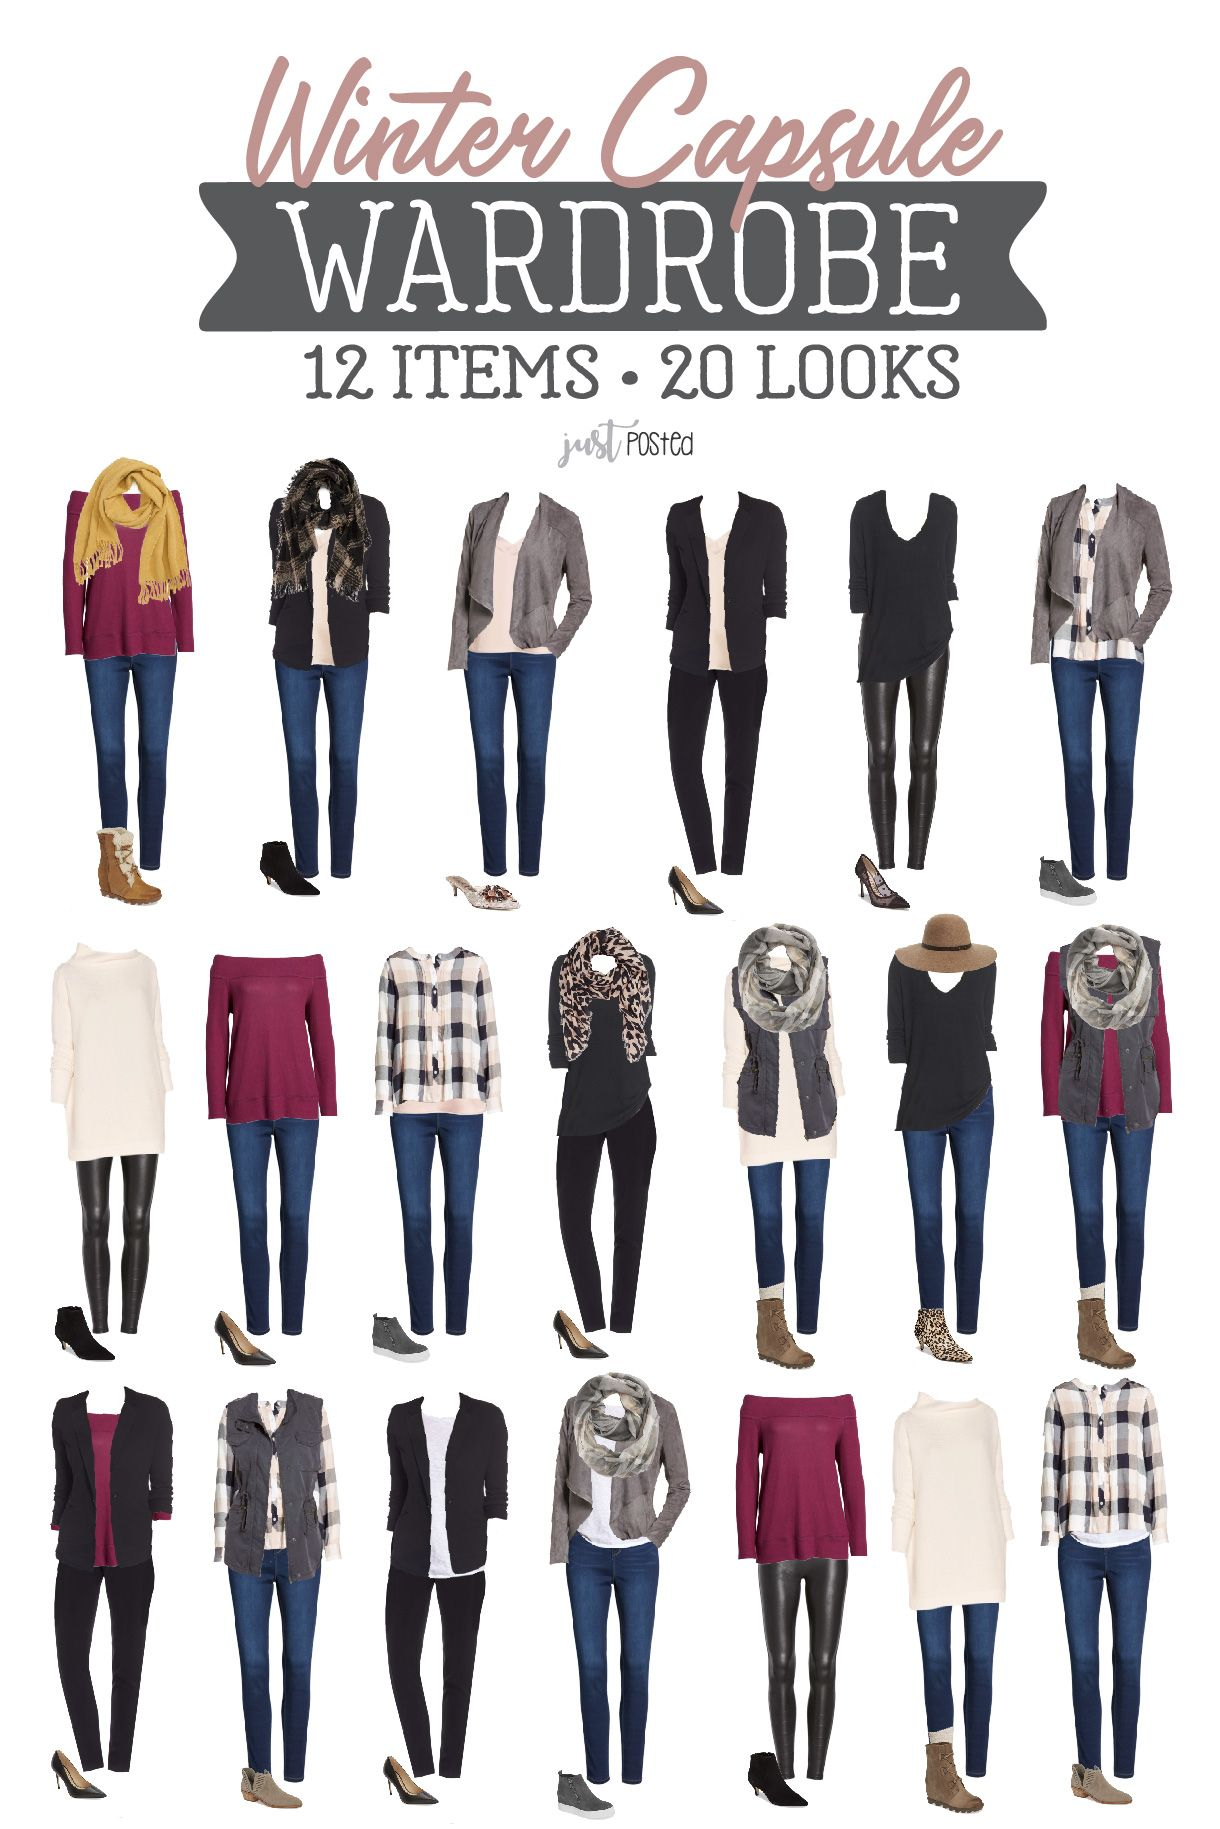 Winter Capsule Wardrobe • 12 Items for 20 Different Looks